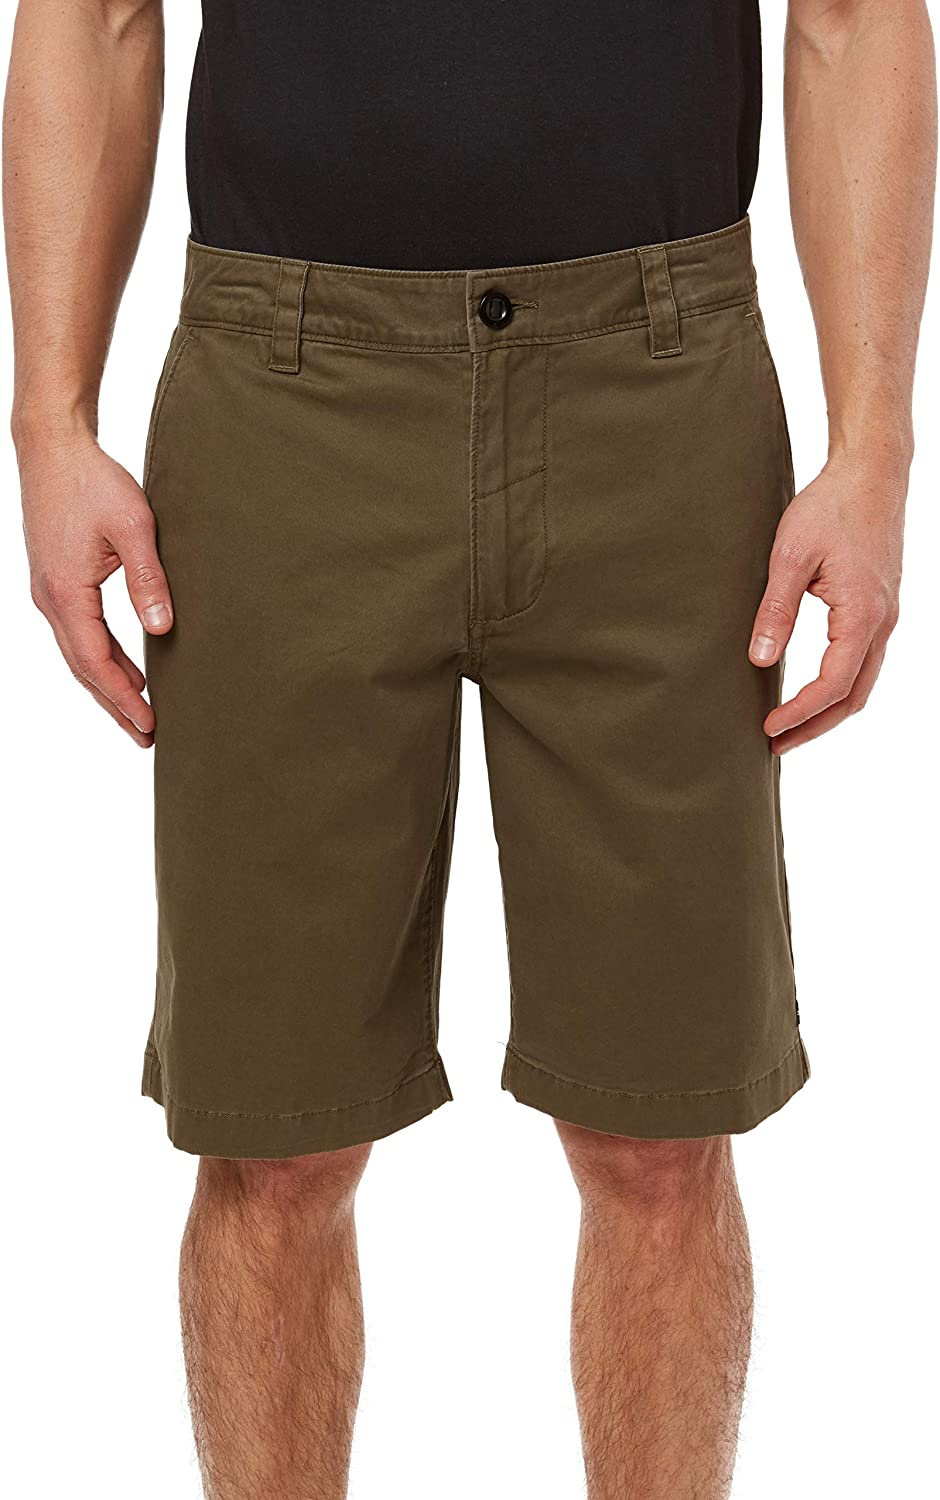 ONEILL Mens Hyperfreak Scallop with Back Pocket Stretch Boardshort